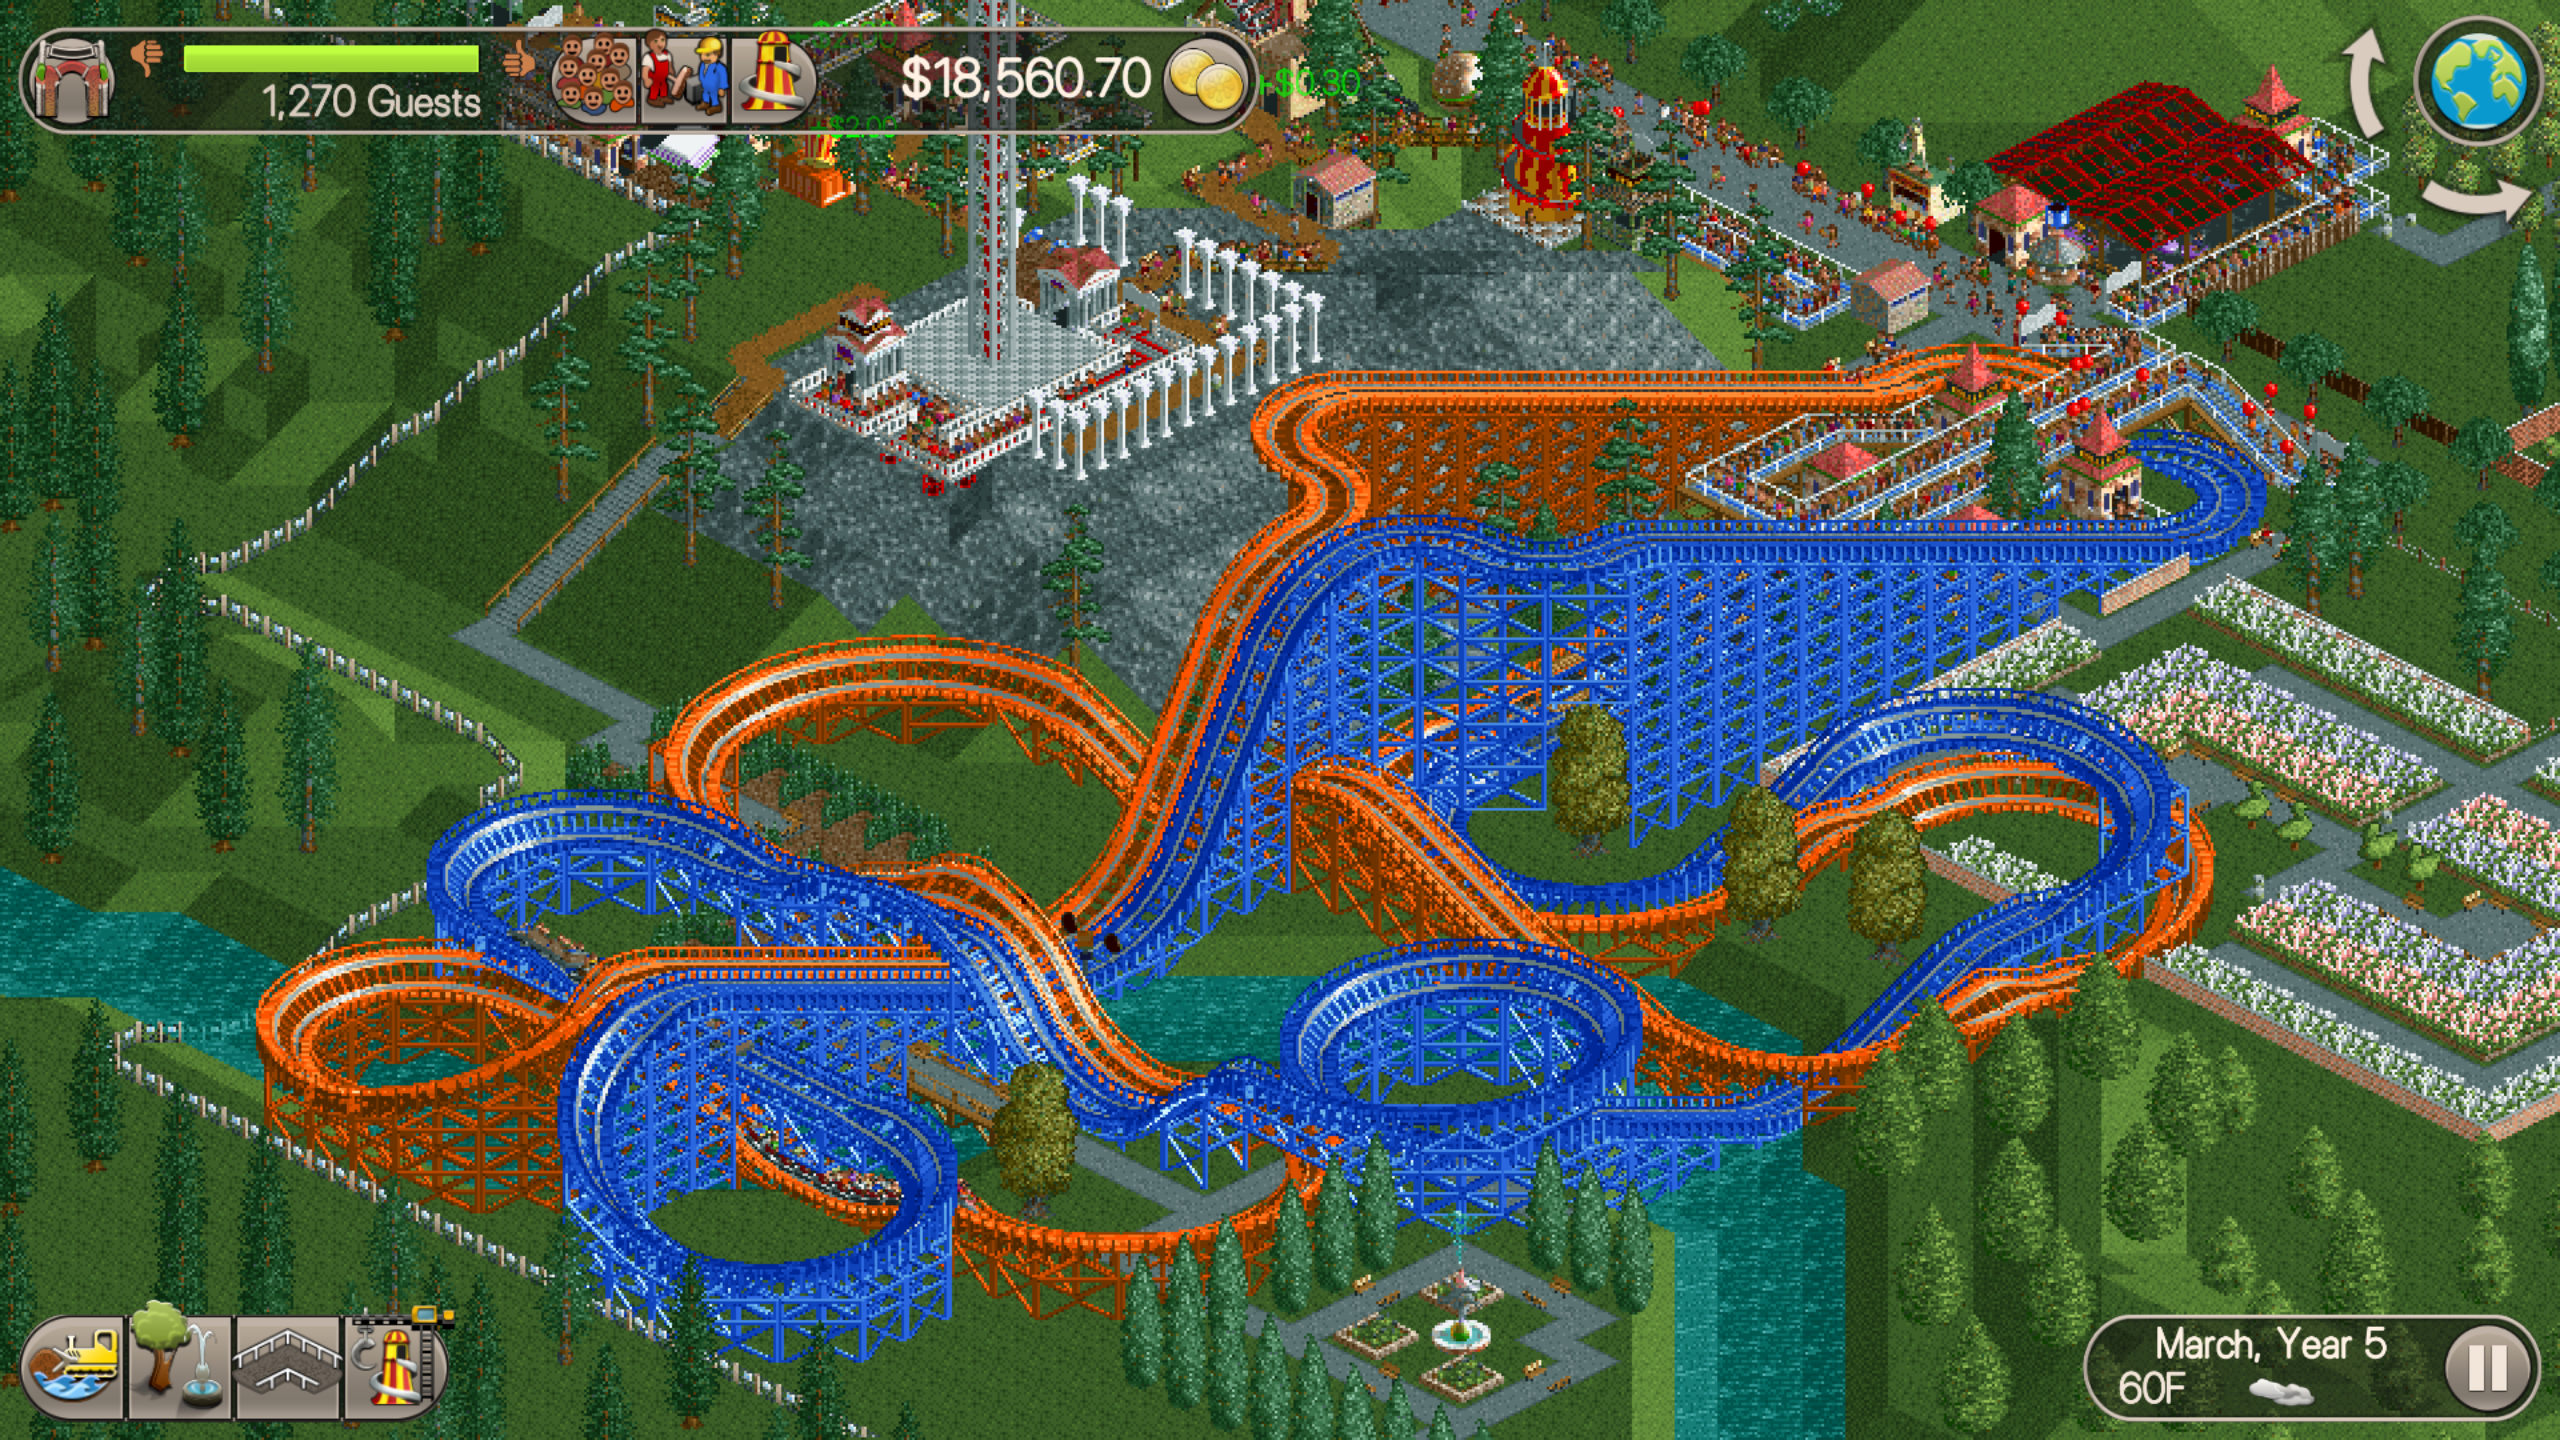 My Best RollerCoaster Tycoon Classic Tips | Video Games | Roller